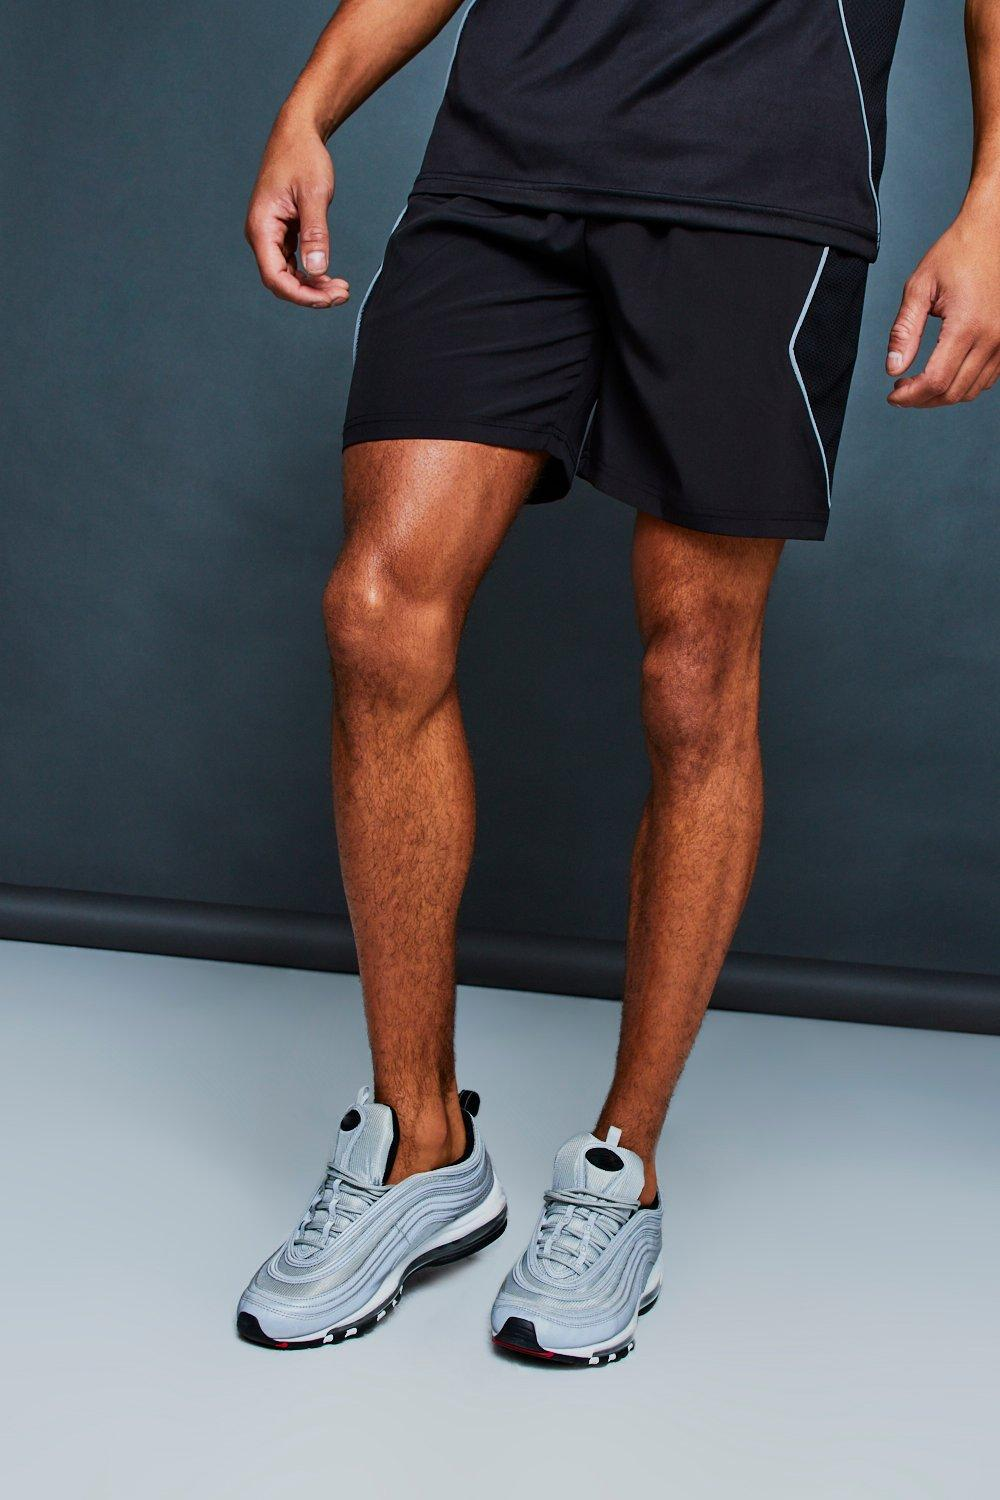 Shorts MAN Reflective black Gym Panel Active fIqxwUI6n